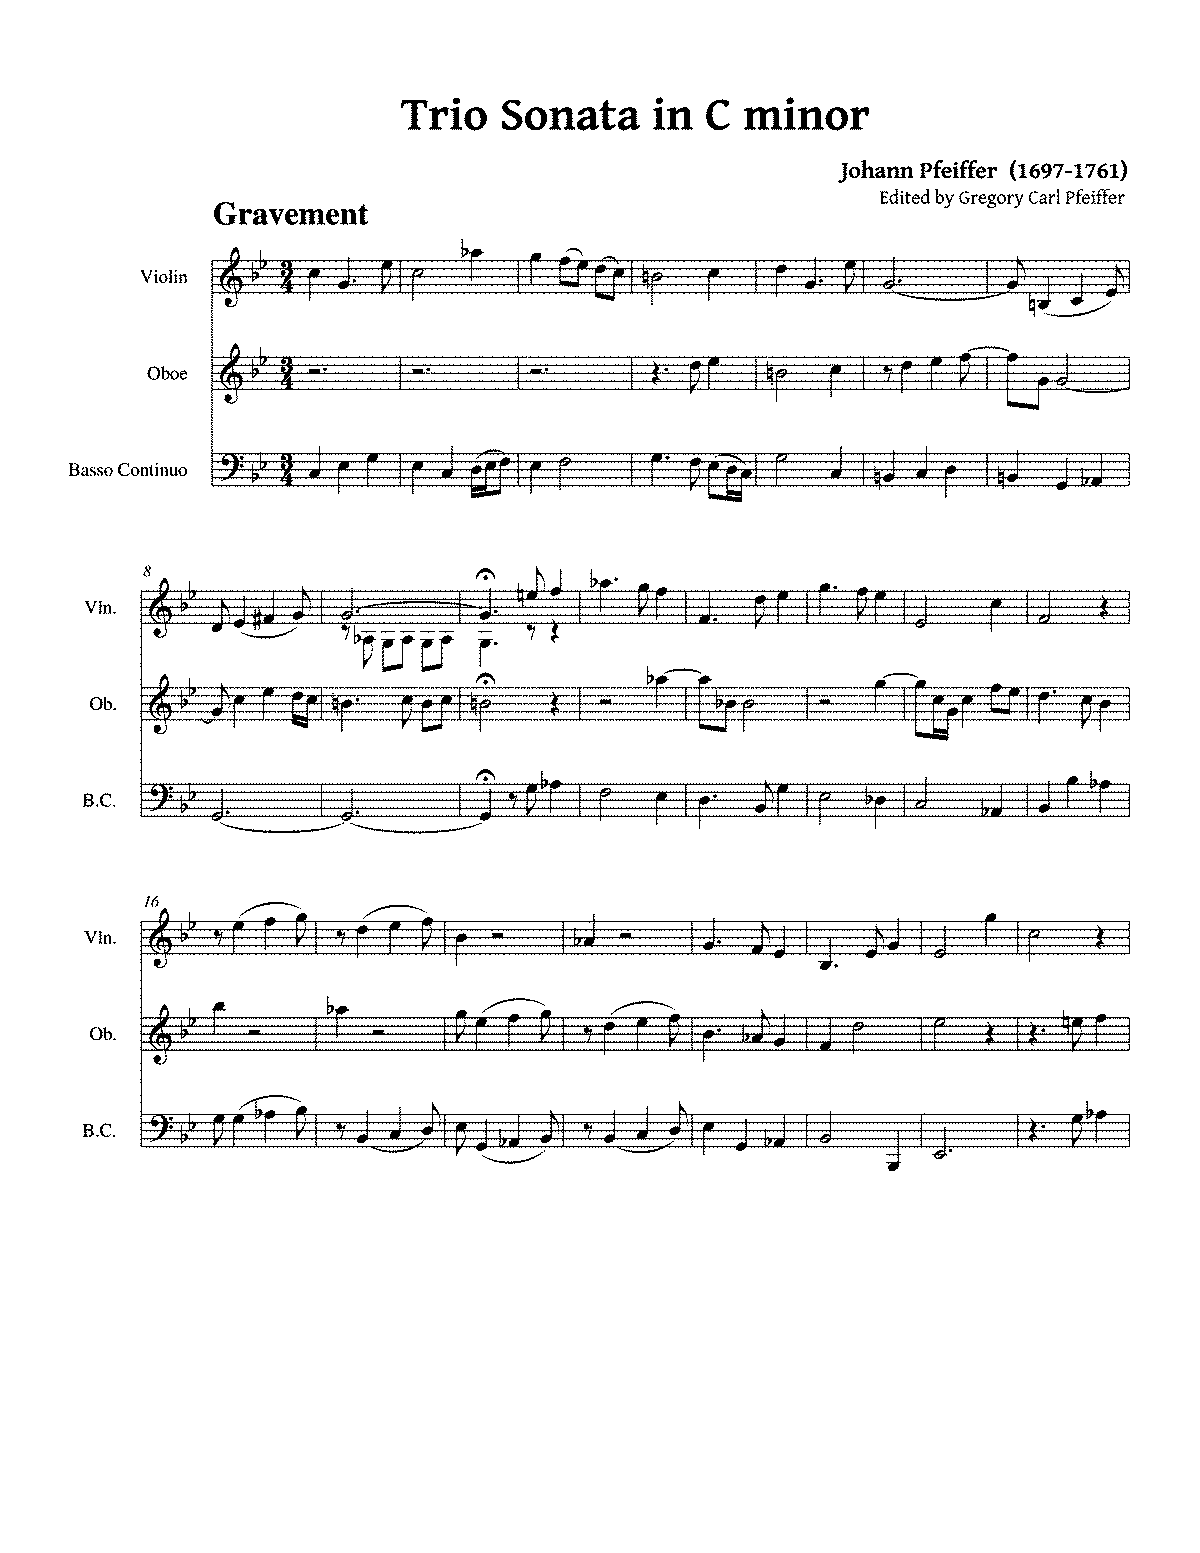 PMLP192790-Trio Sonata in C minor - Johann Pfeiffer.pdf